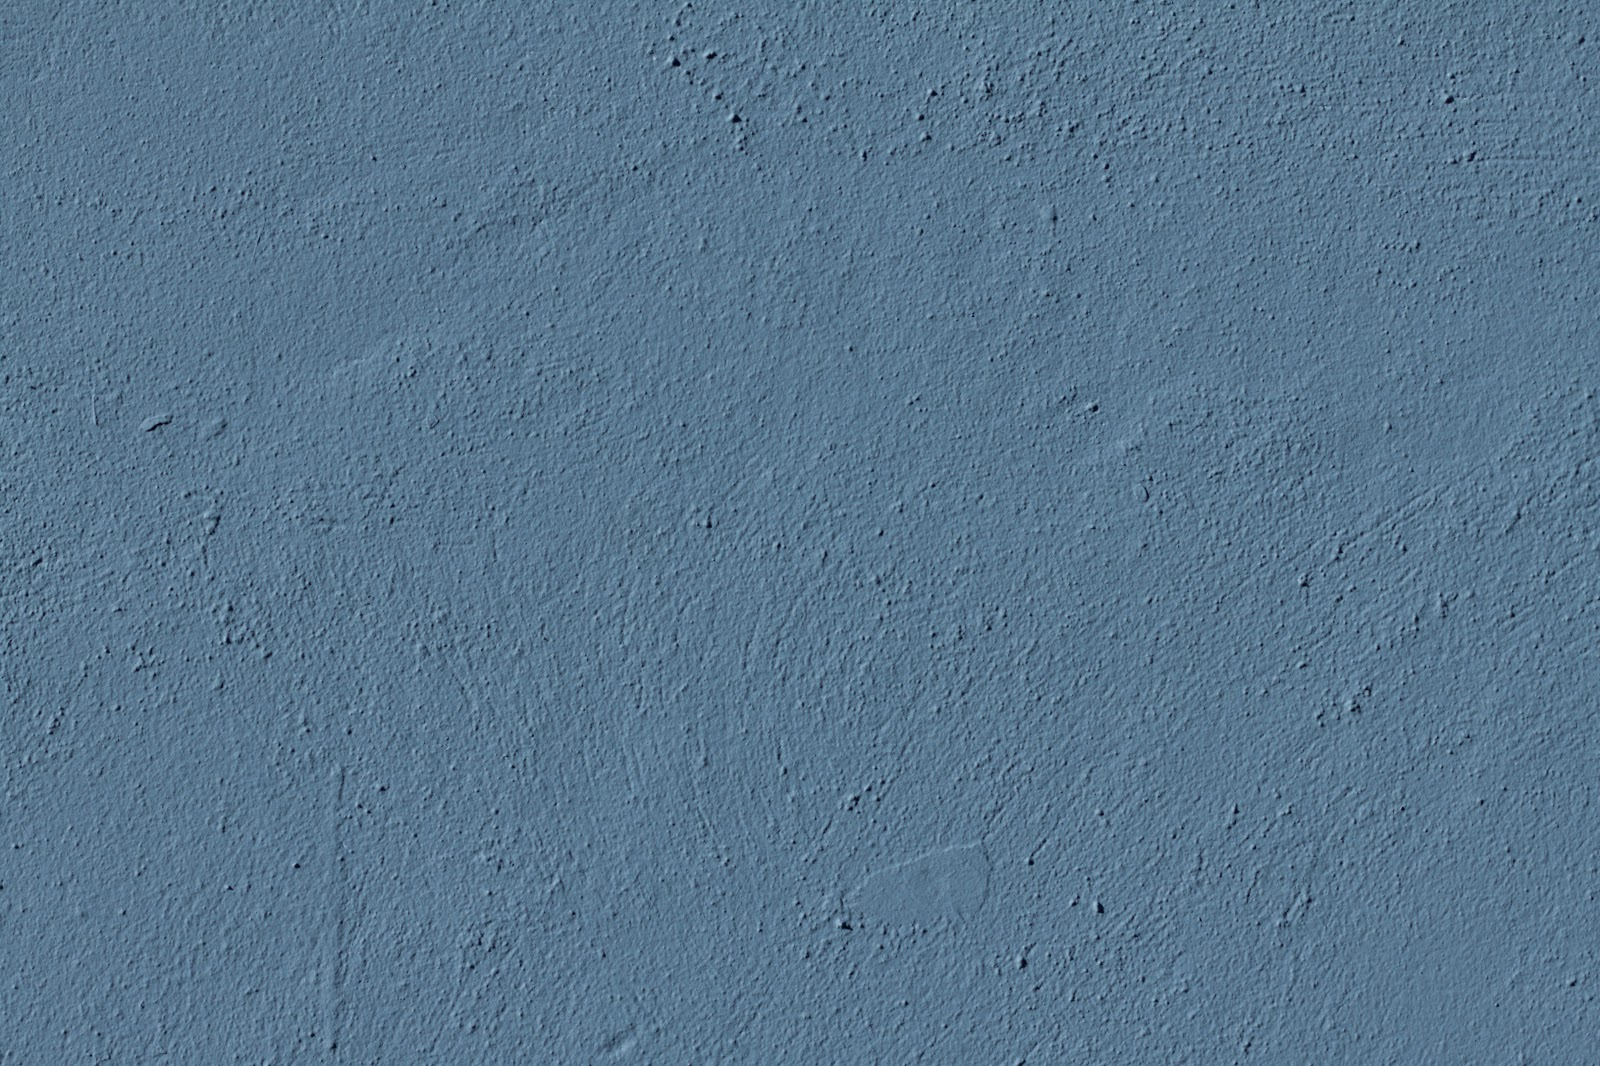 Stucco blue wall texture feb_2015 4770x3178